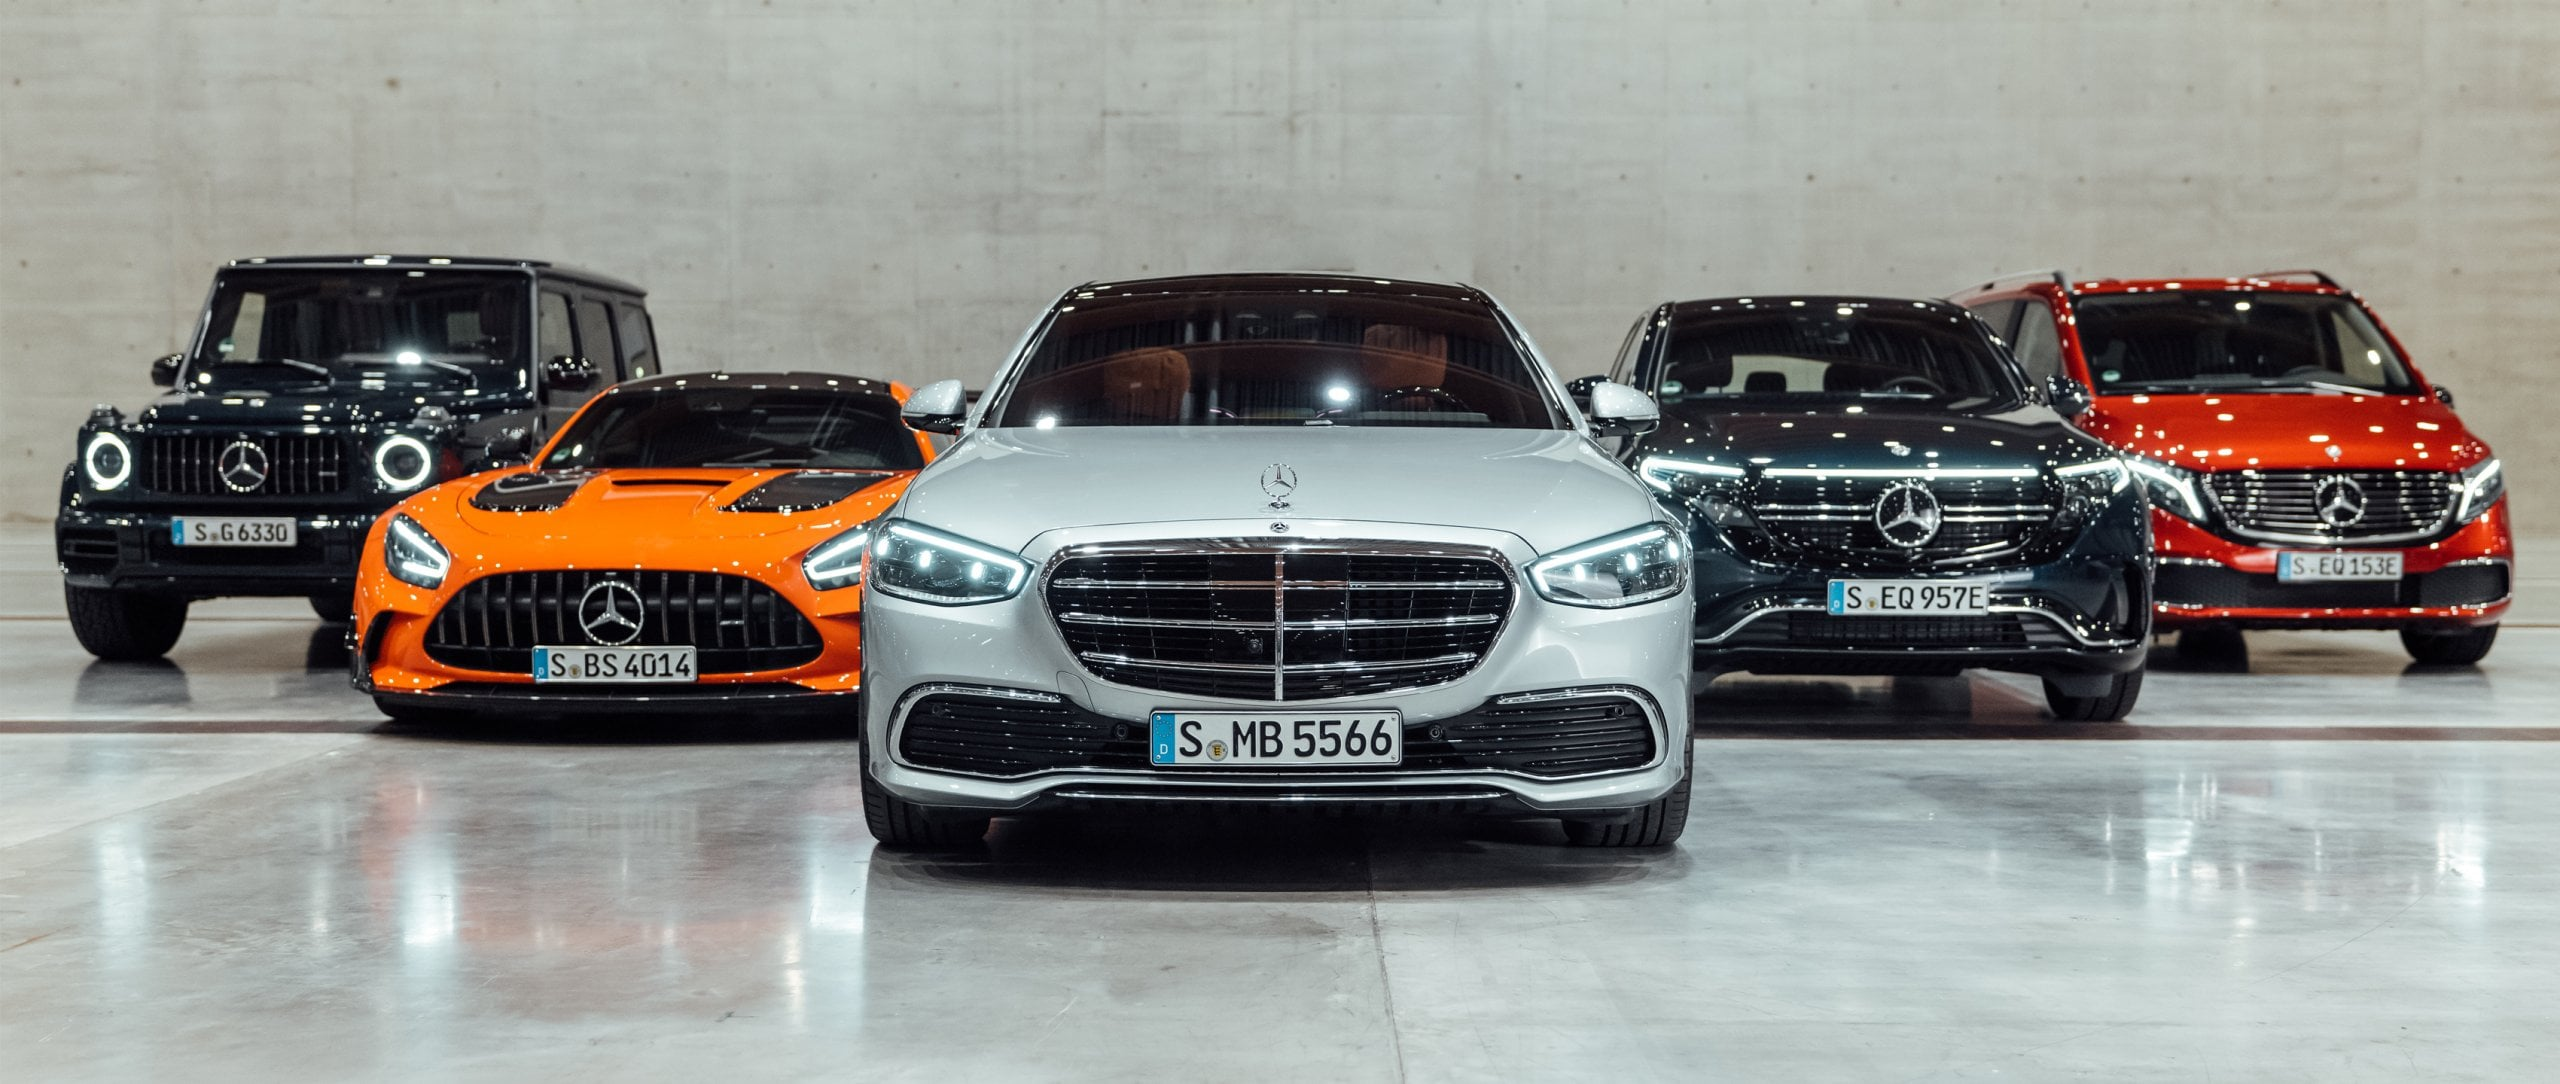 A selection of Mercedes-Benz and Mercedes-AMG models: G-Class, Mercedes-AMG GT Black Series, S-Class, EQC, EQV